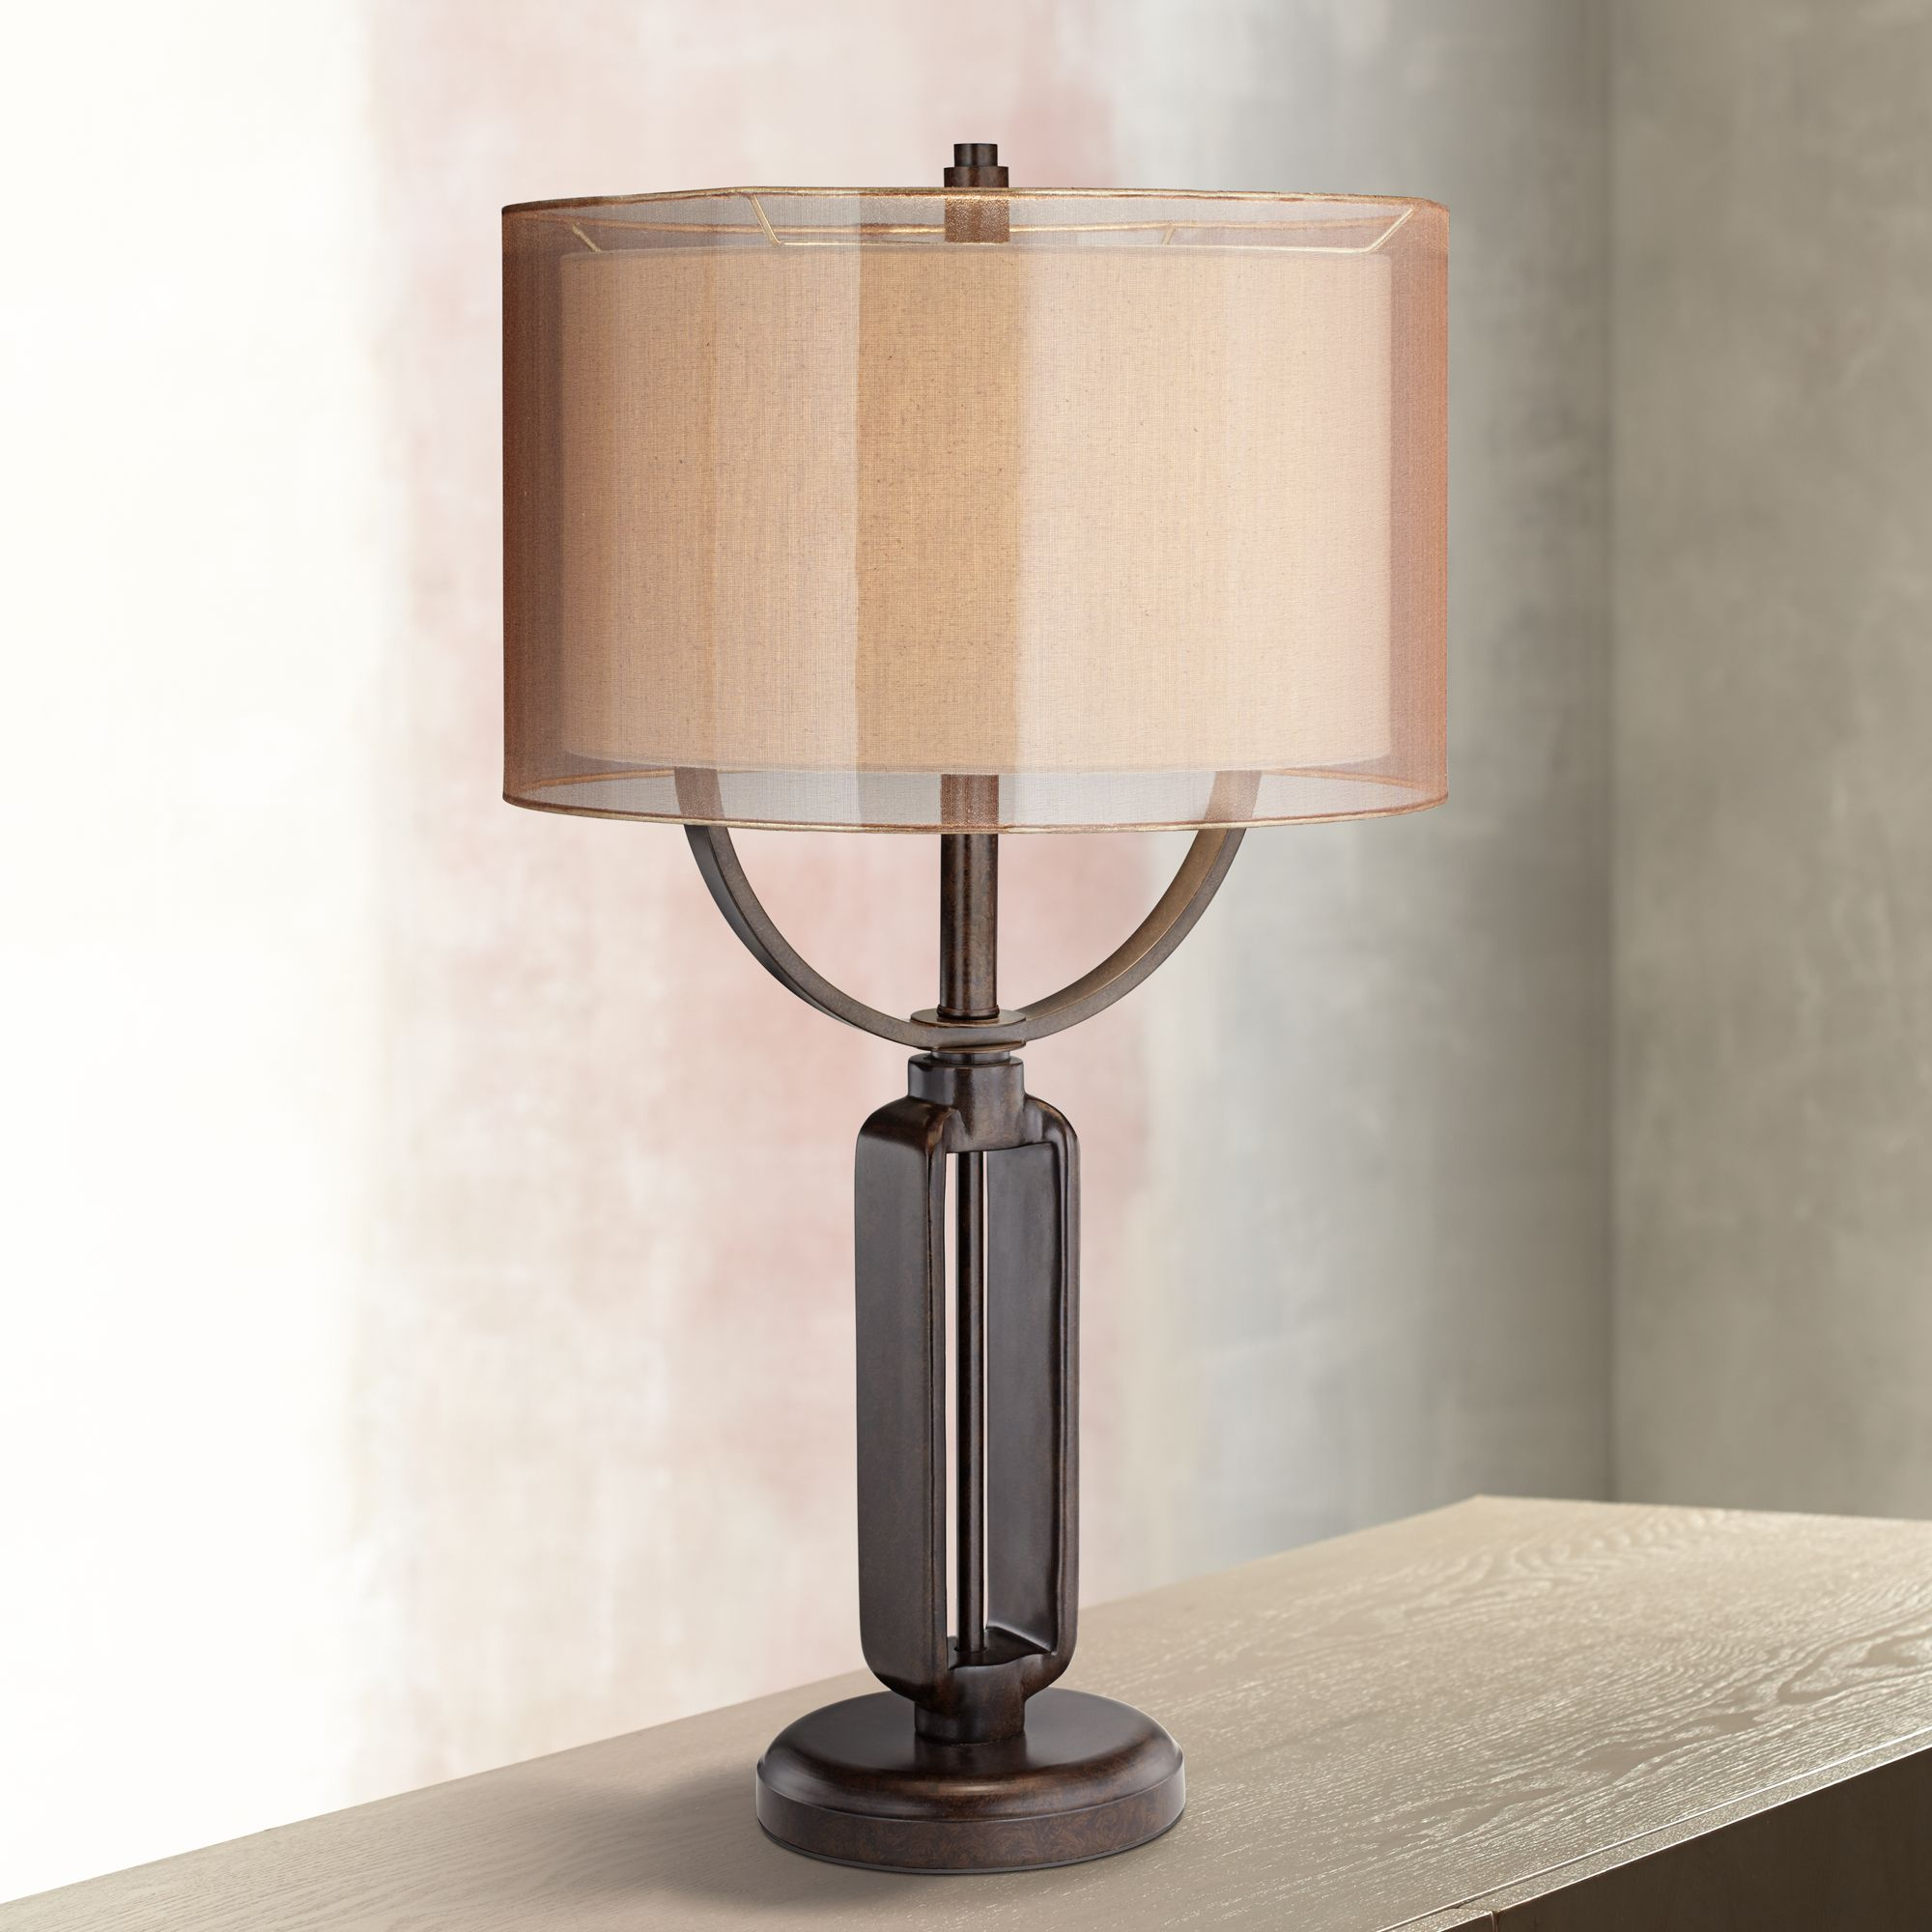 Superbe Franklin Iron Works Monroe Industrial Table Lamp